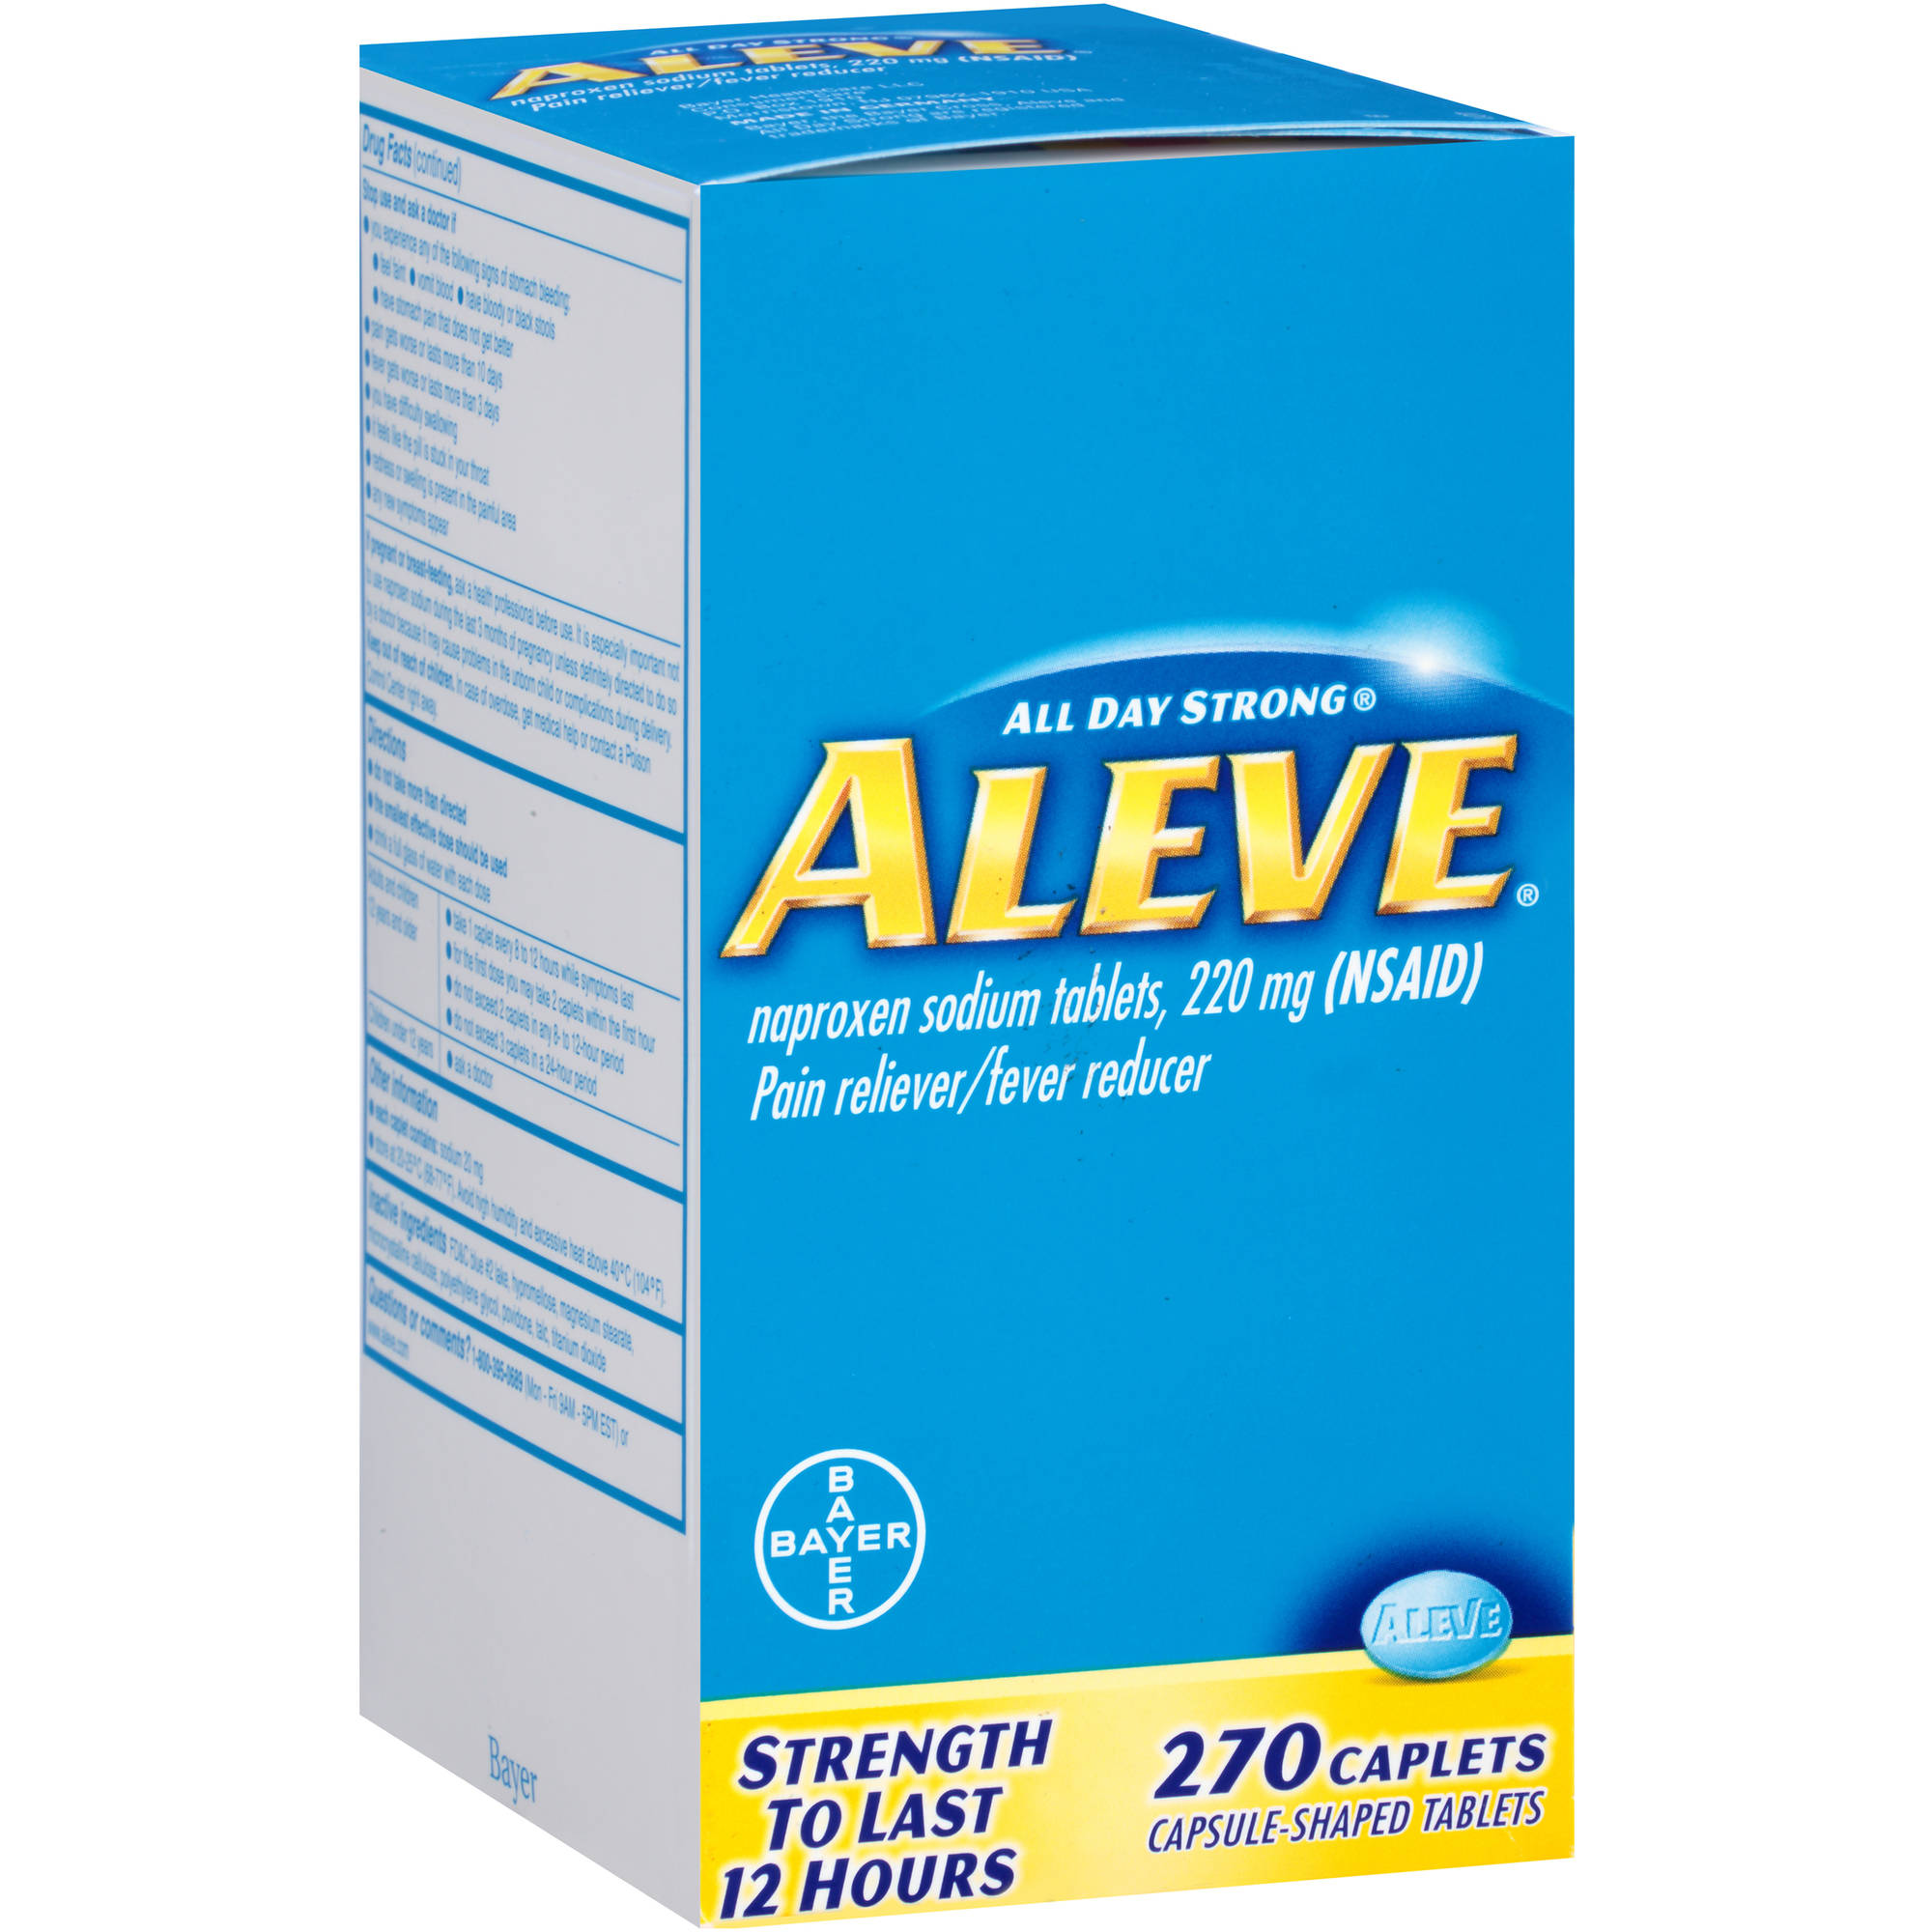 Aleve Naproxen Sodium Pain Reliever/Fever Reducer, 220mg, 270 count